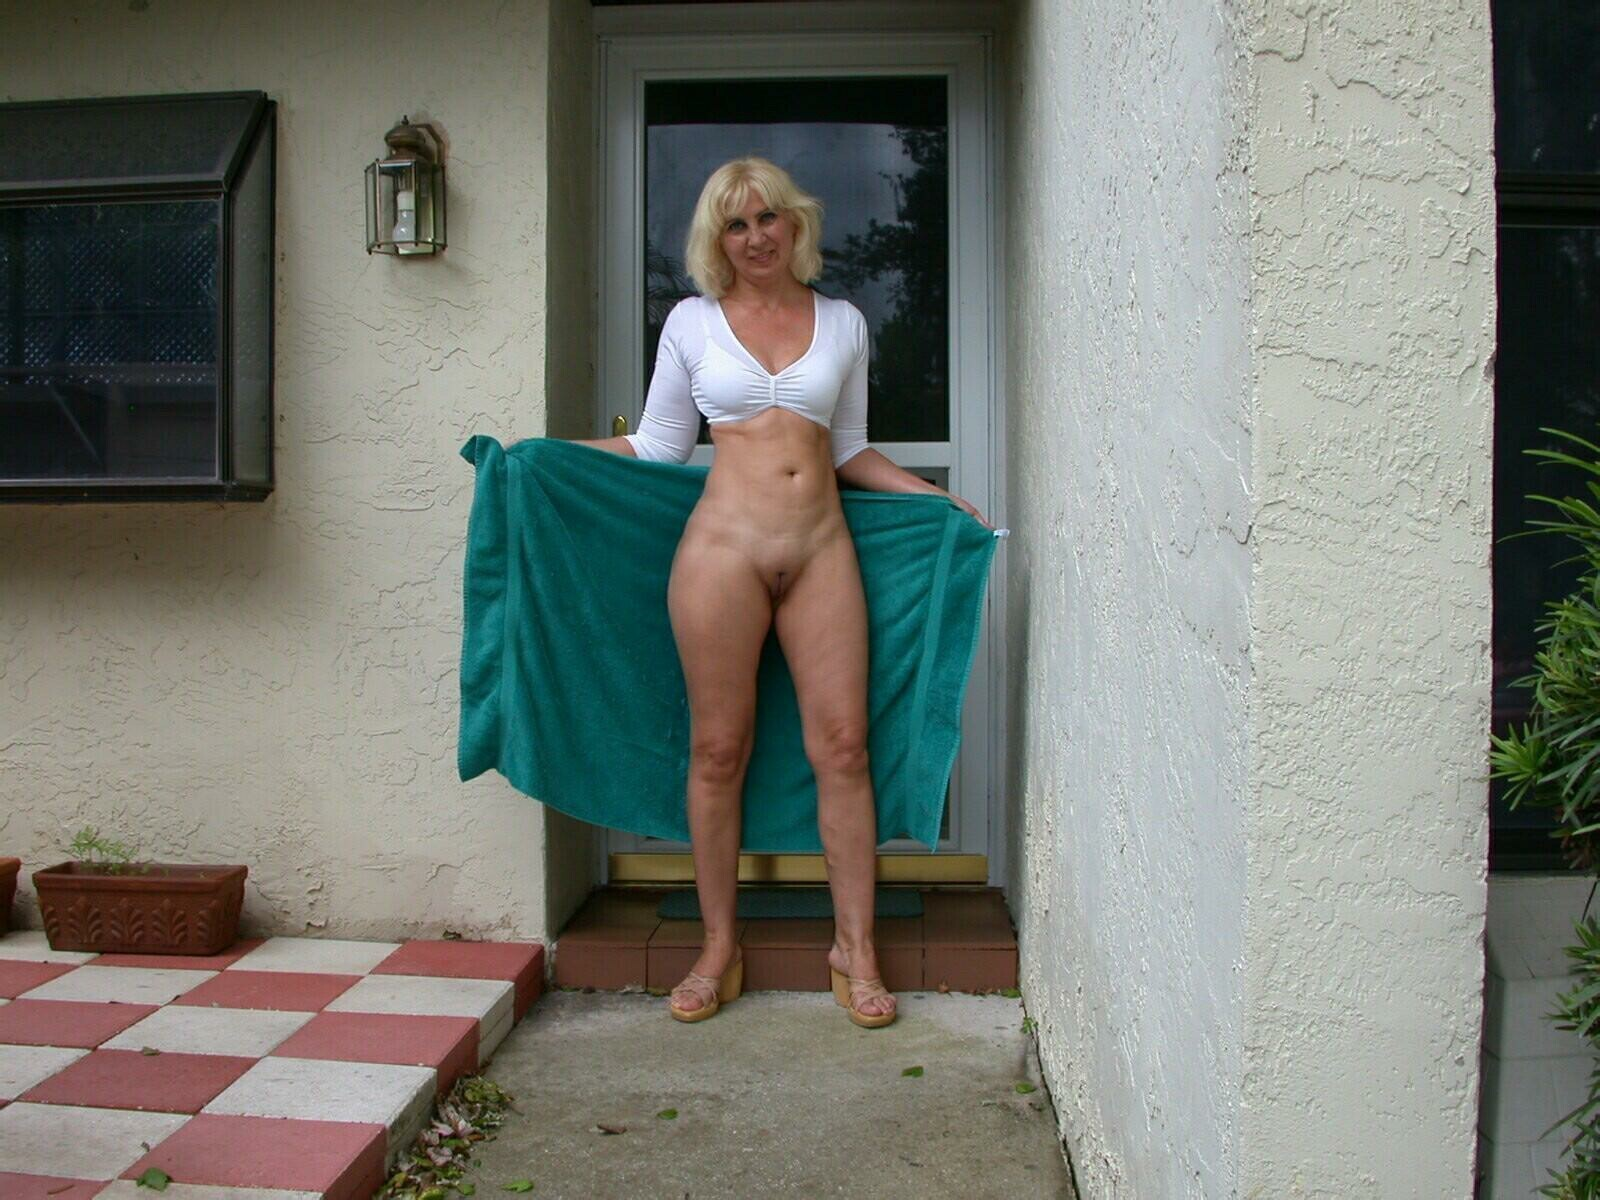 Mature neighbor gallery post — 1